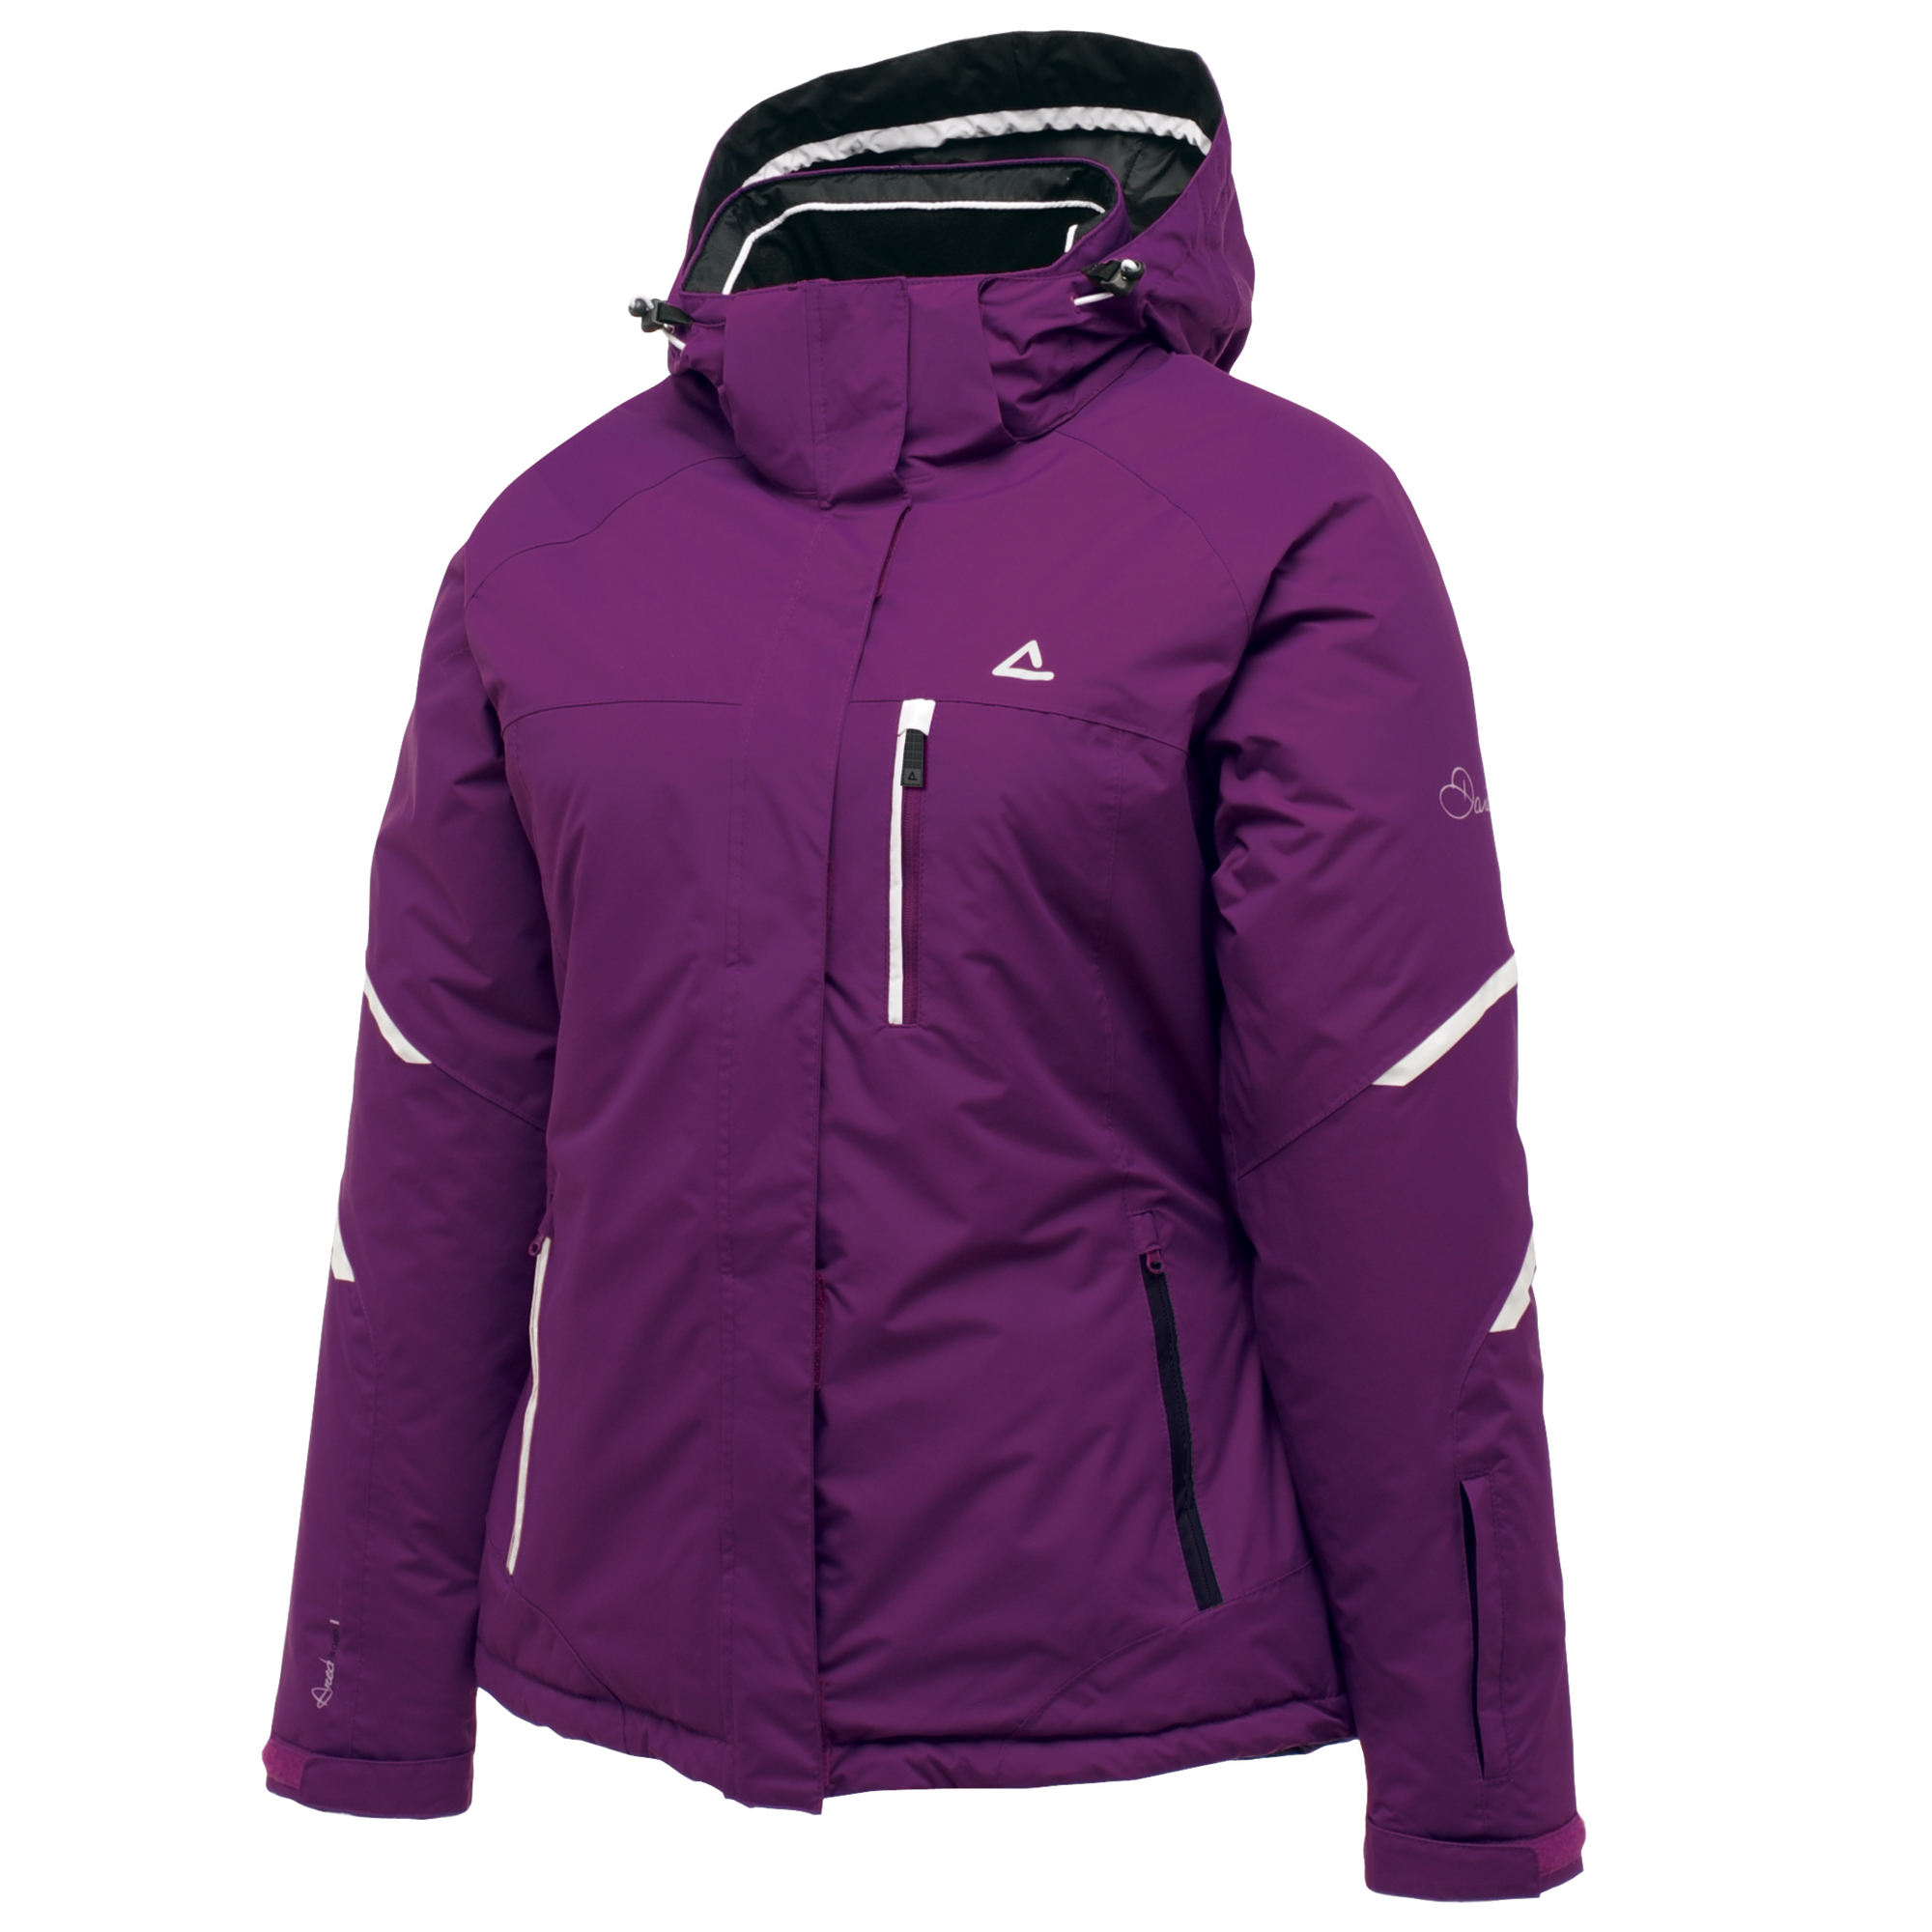 mens ski wear. Get all your ski clothing and ski equipment here in our packed mens ski wear department that's full of bargains to suit all budgets. Whether your looking for ski jackets, ski helmets or you want the full kit, we have the right thing for you.